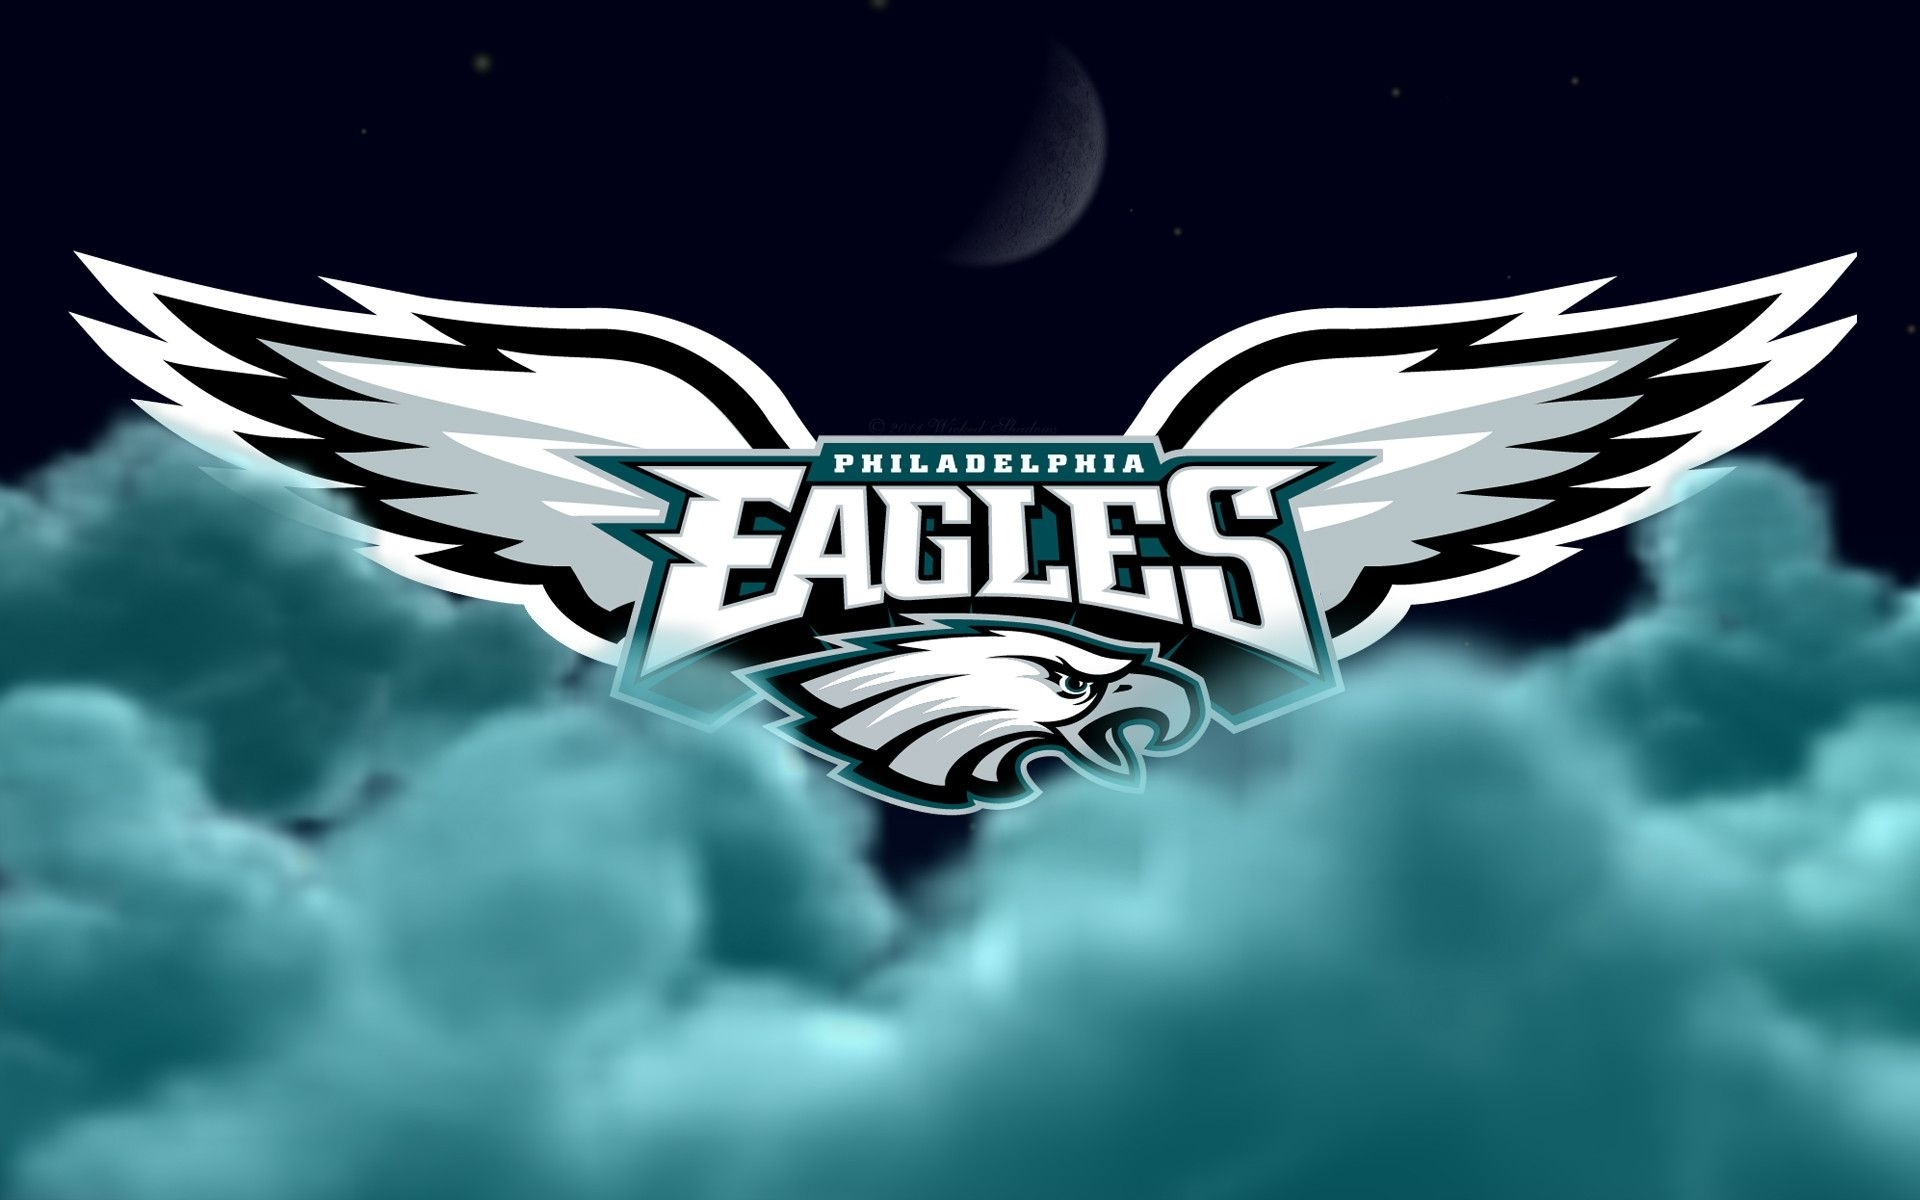 philadelphia eagles hd wallpapers & pictures | hd wallpapers | fly